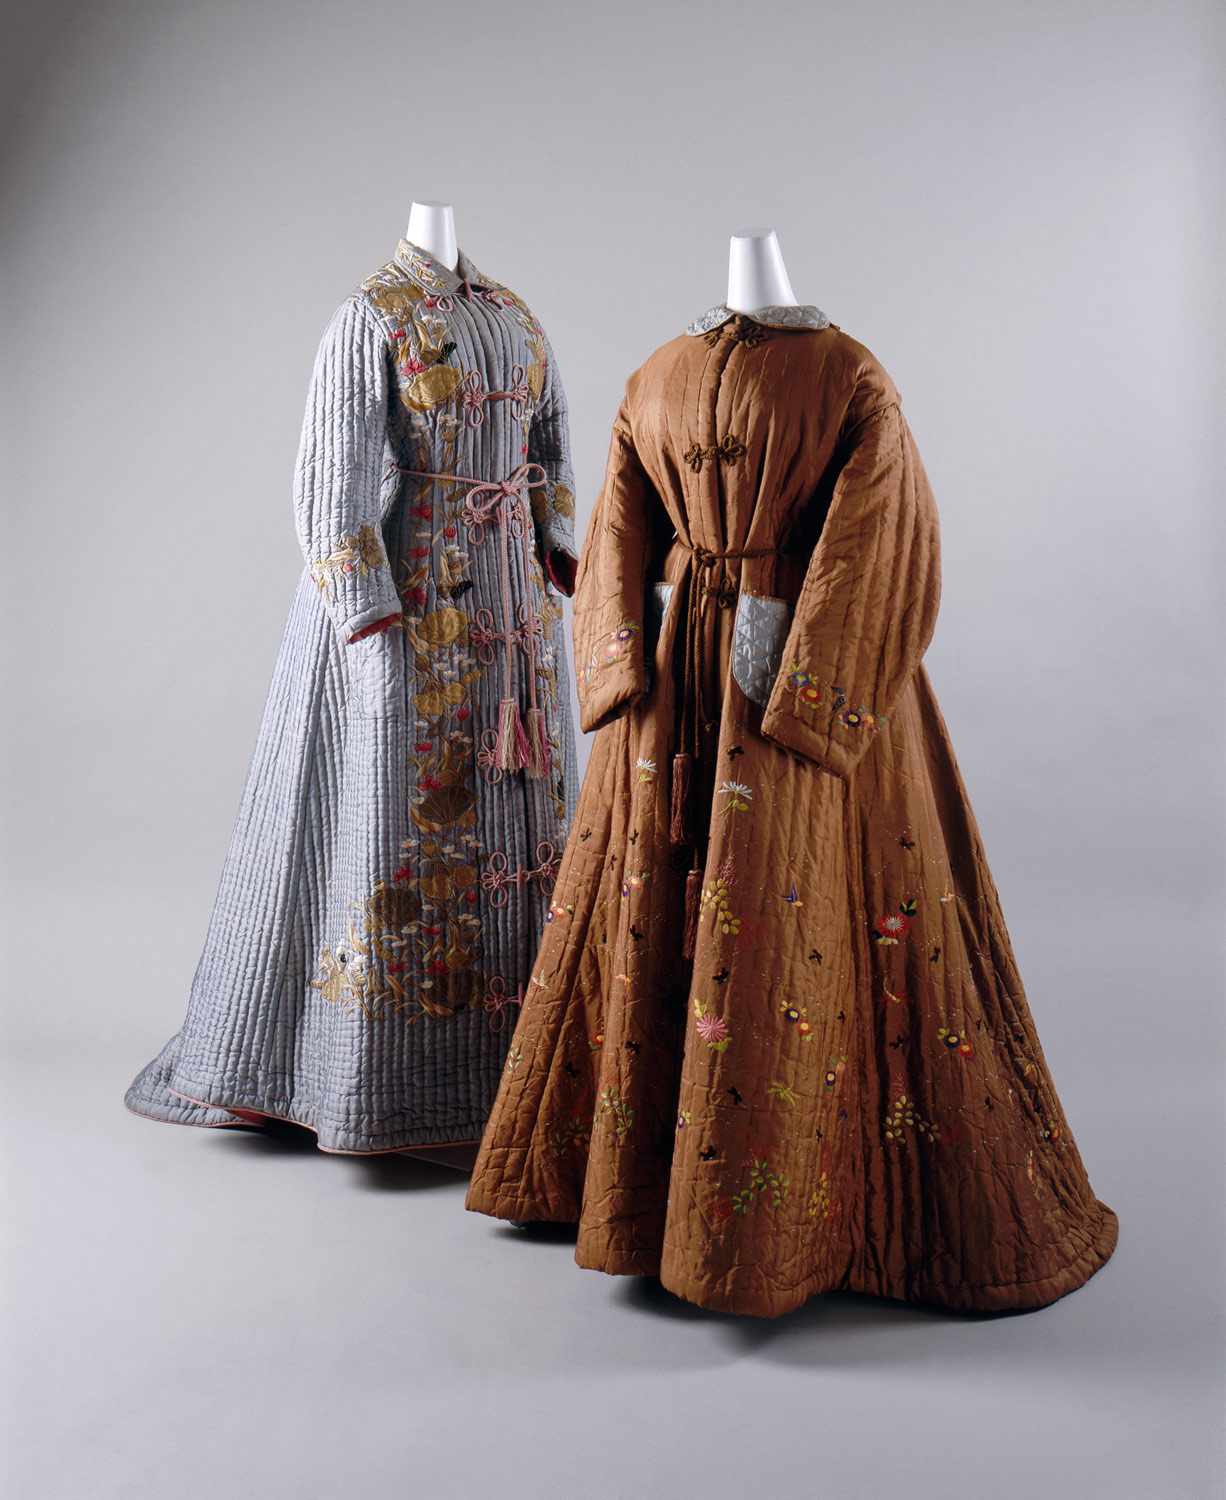 orientalism visions of the east in western dress essay dressing gown